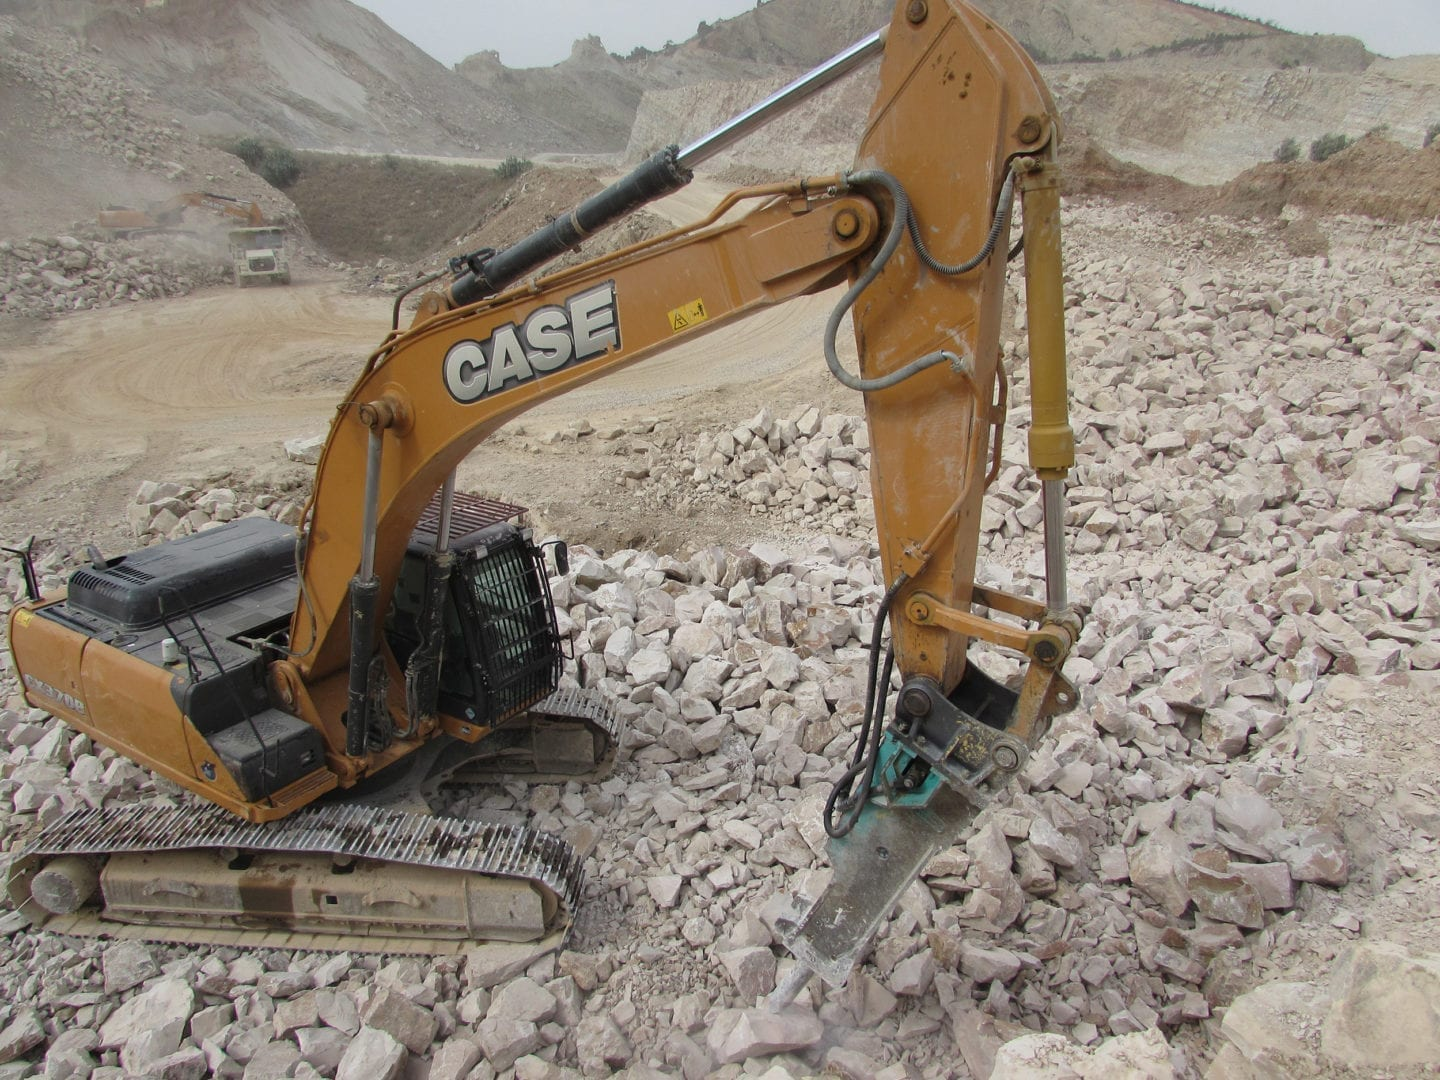 Tunisia quarry loyal to Case wheel loaders for over 25 years